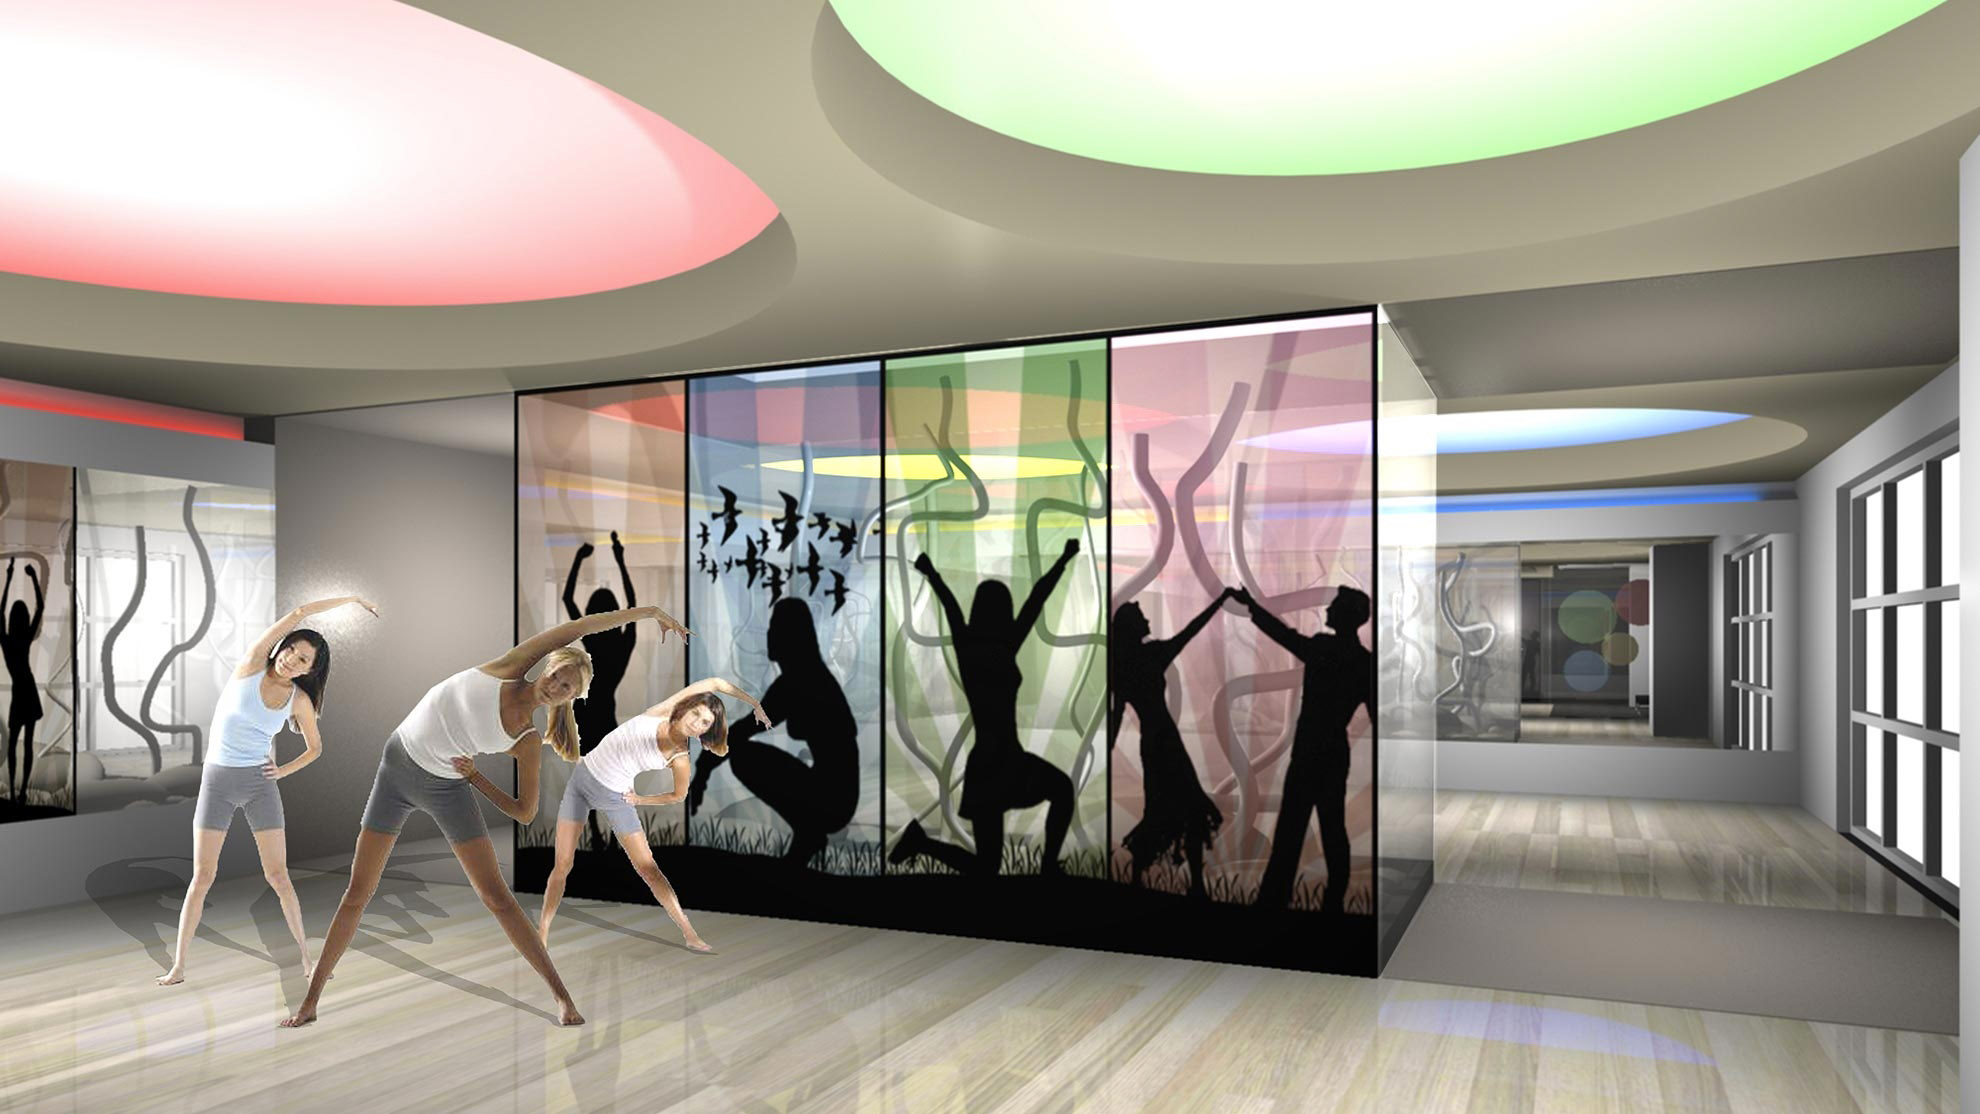 Designing gyms - Fitness Club E.P Jim 4